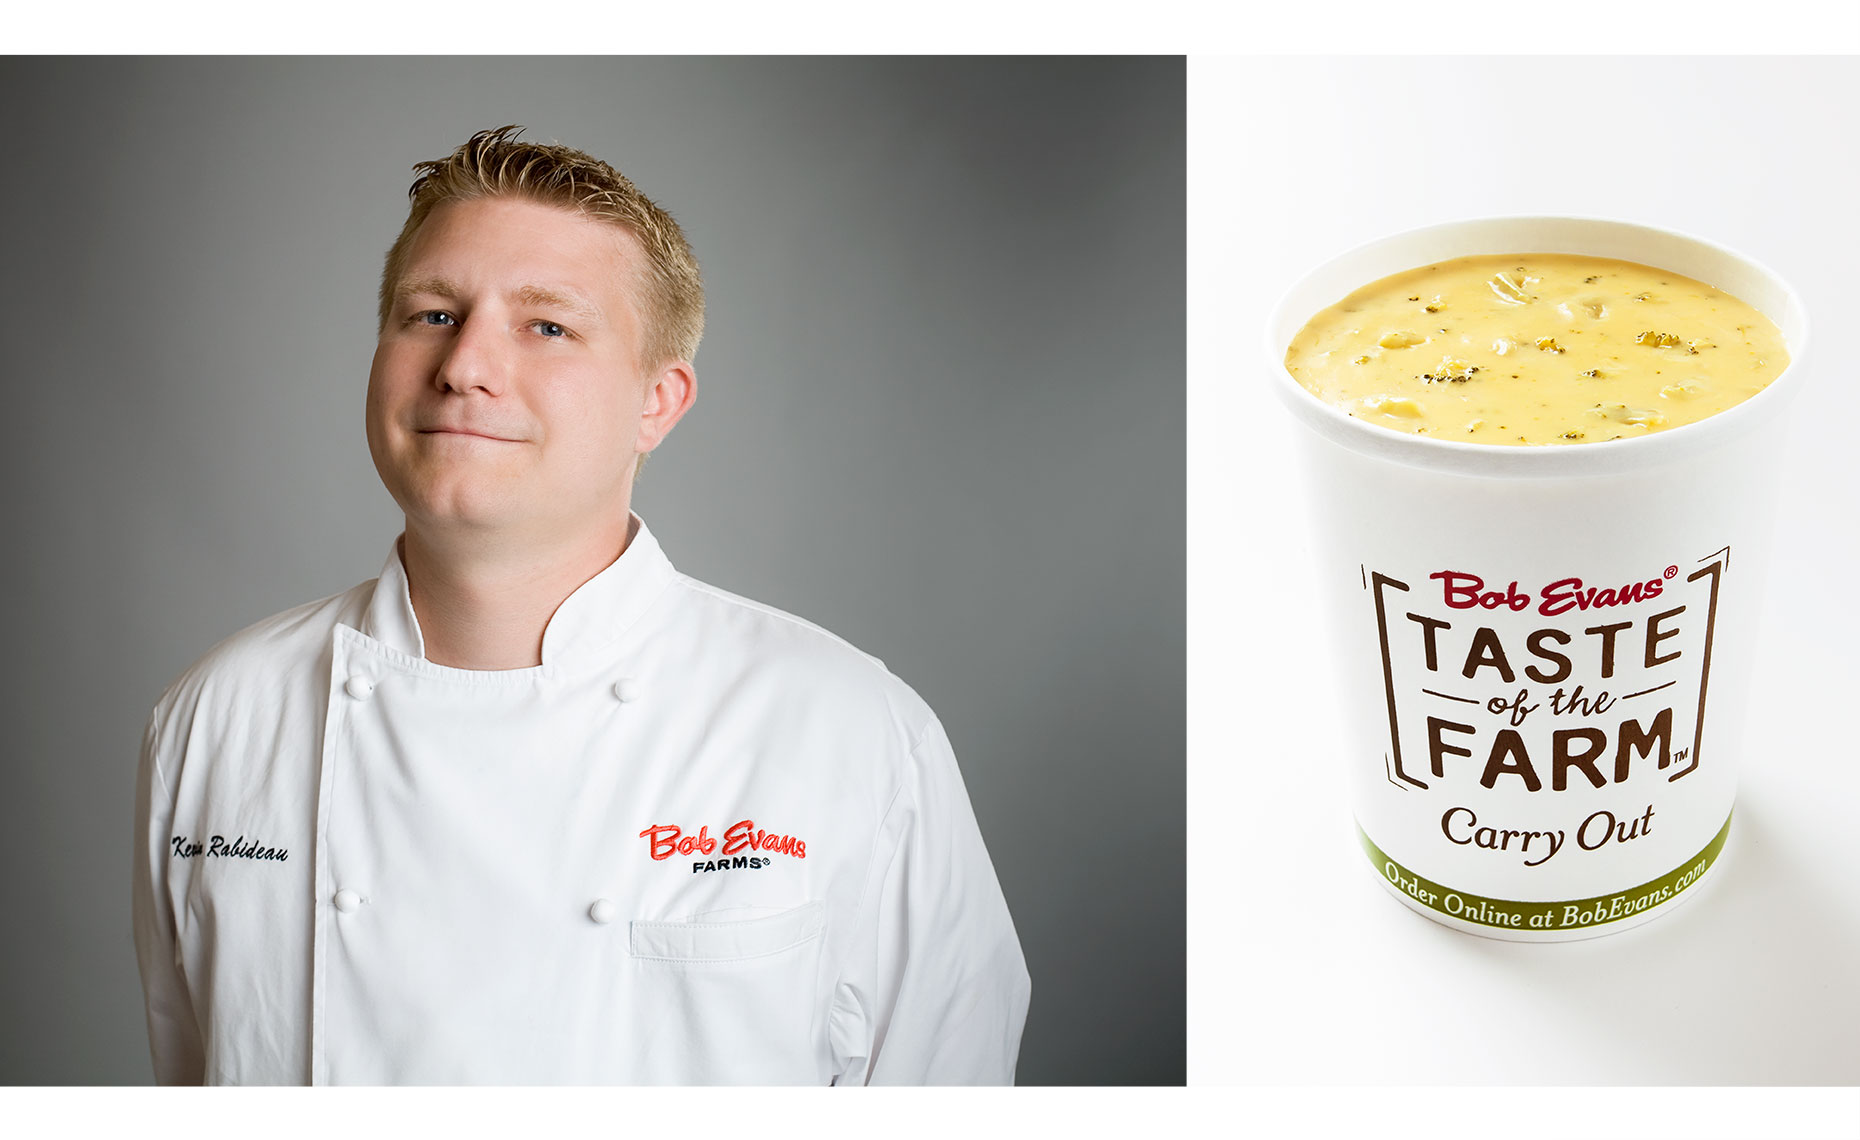 Bob Evans chef on grey background